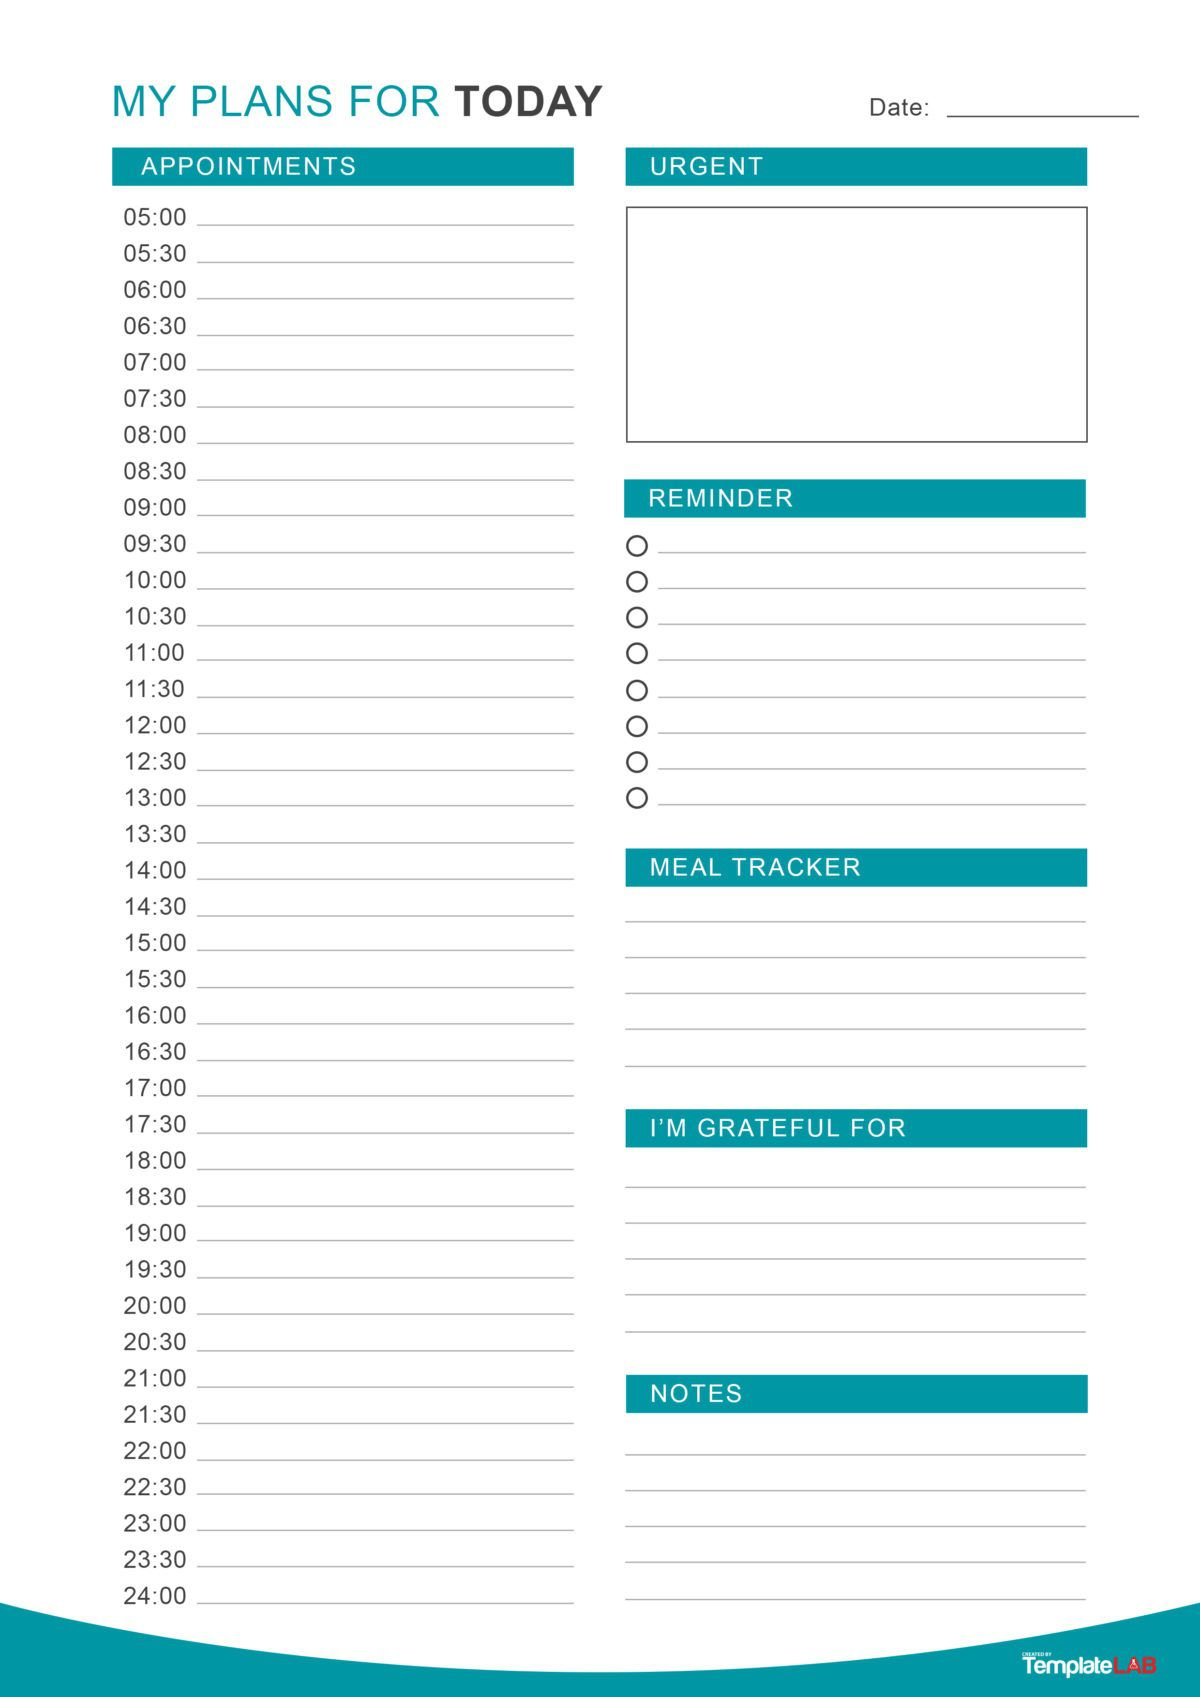 003 Exceptional Daily Hourly Schedule Template Word Idea Full